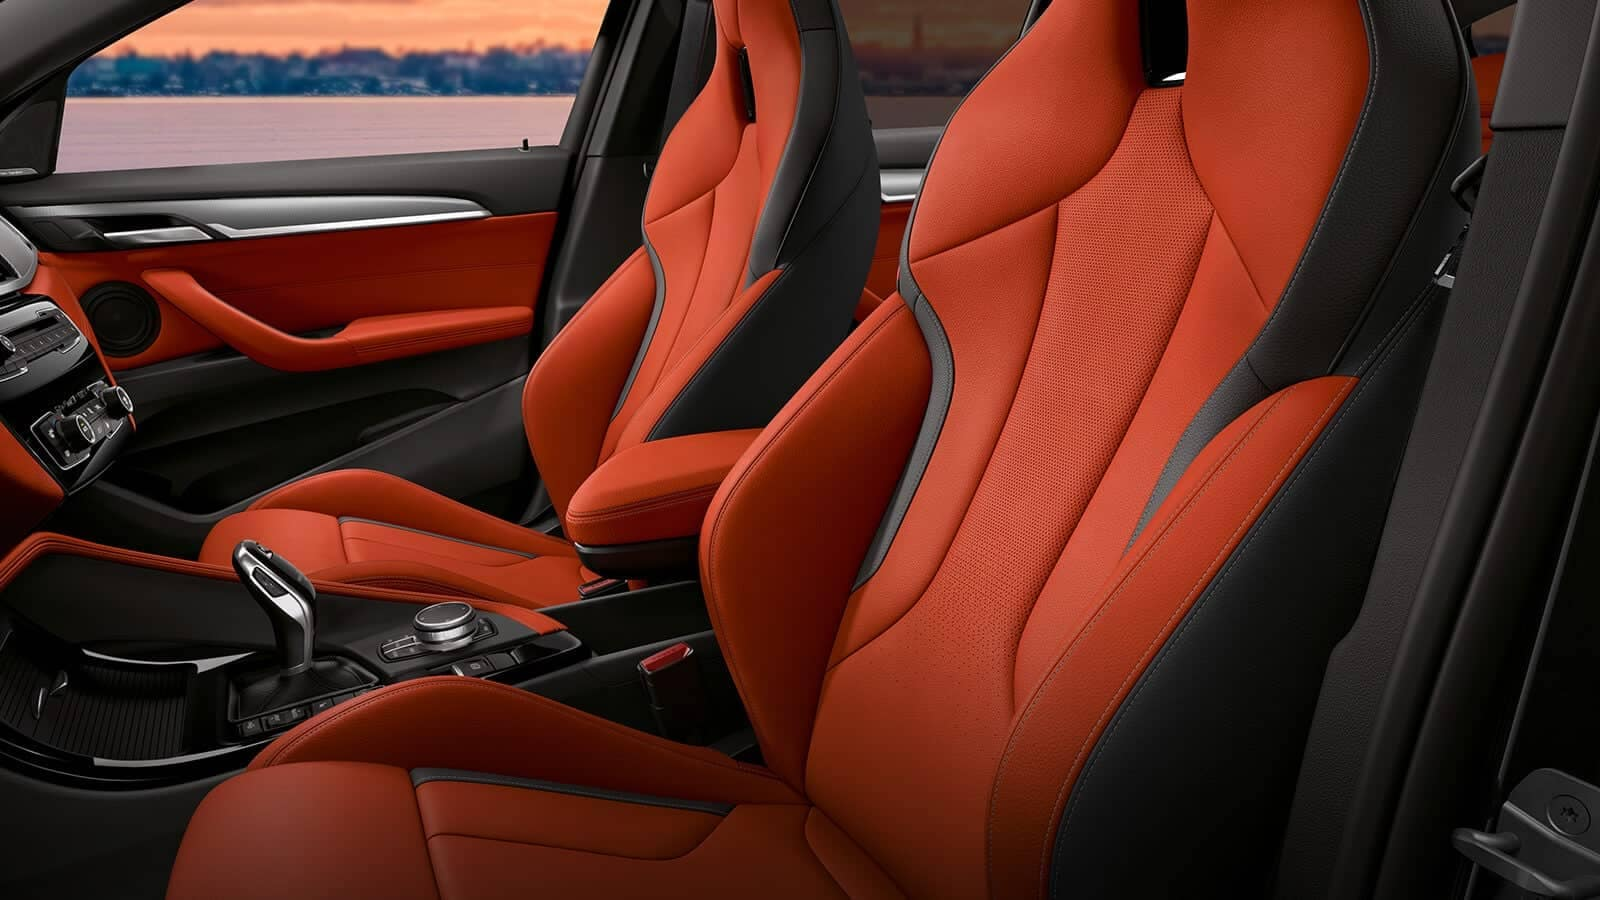 BMW x2 interior seats